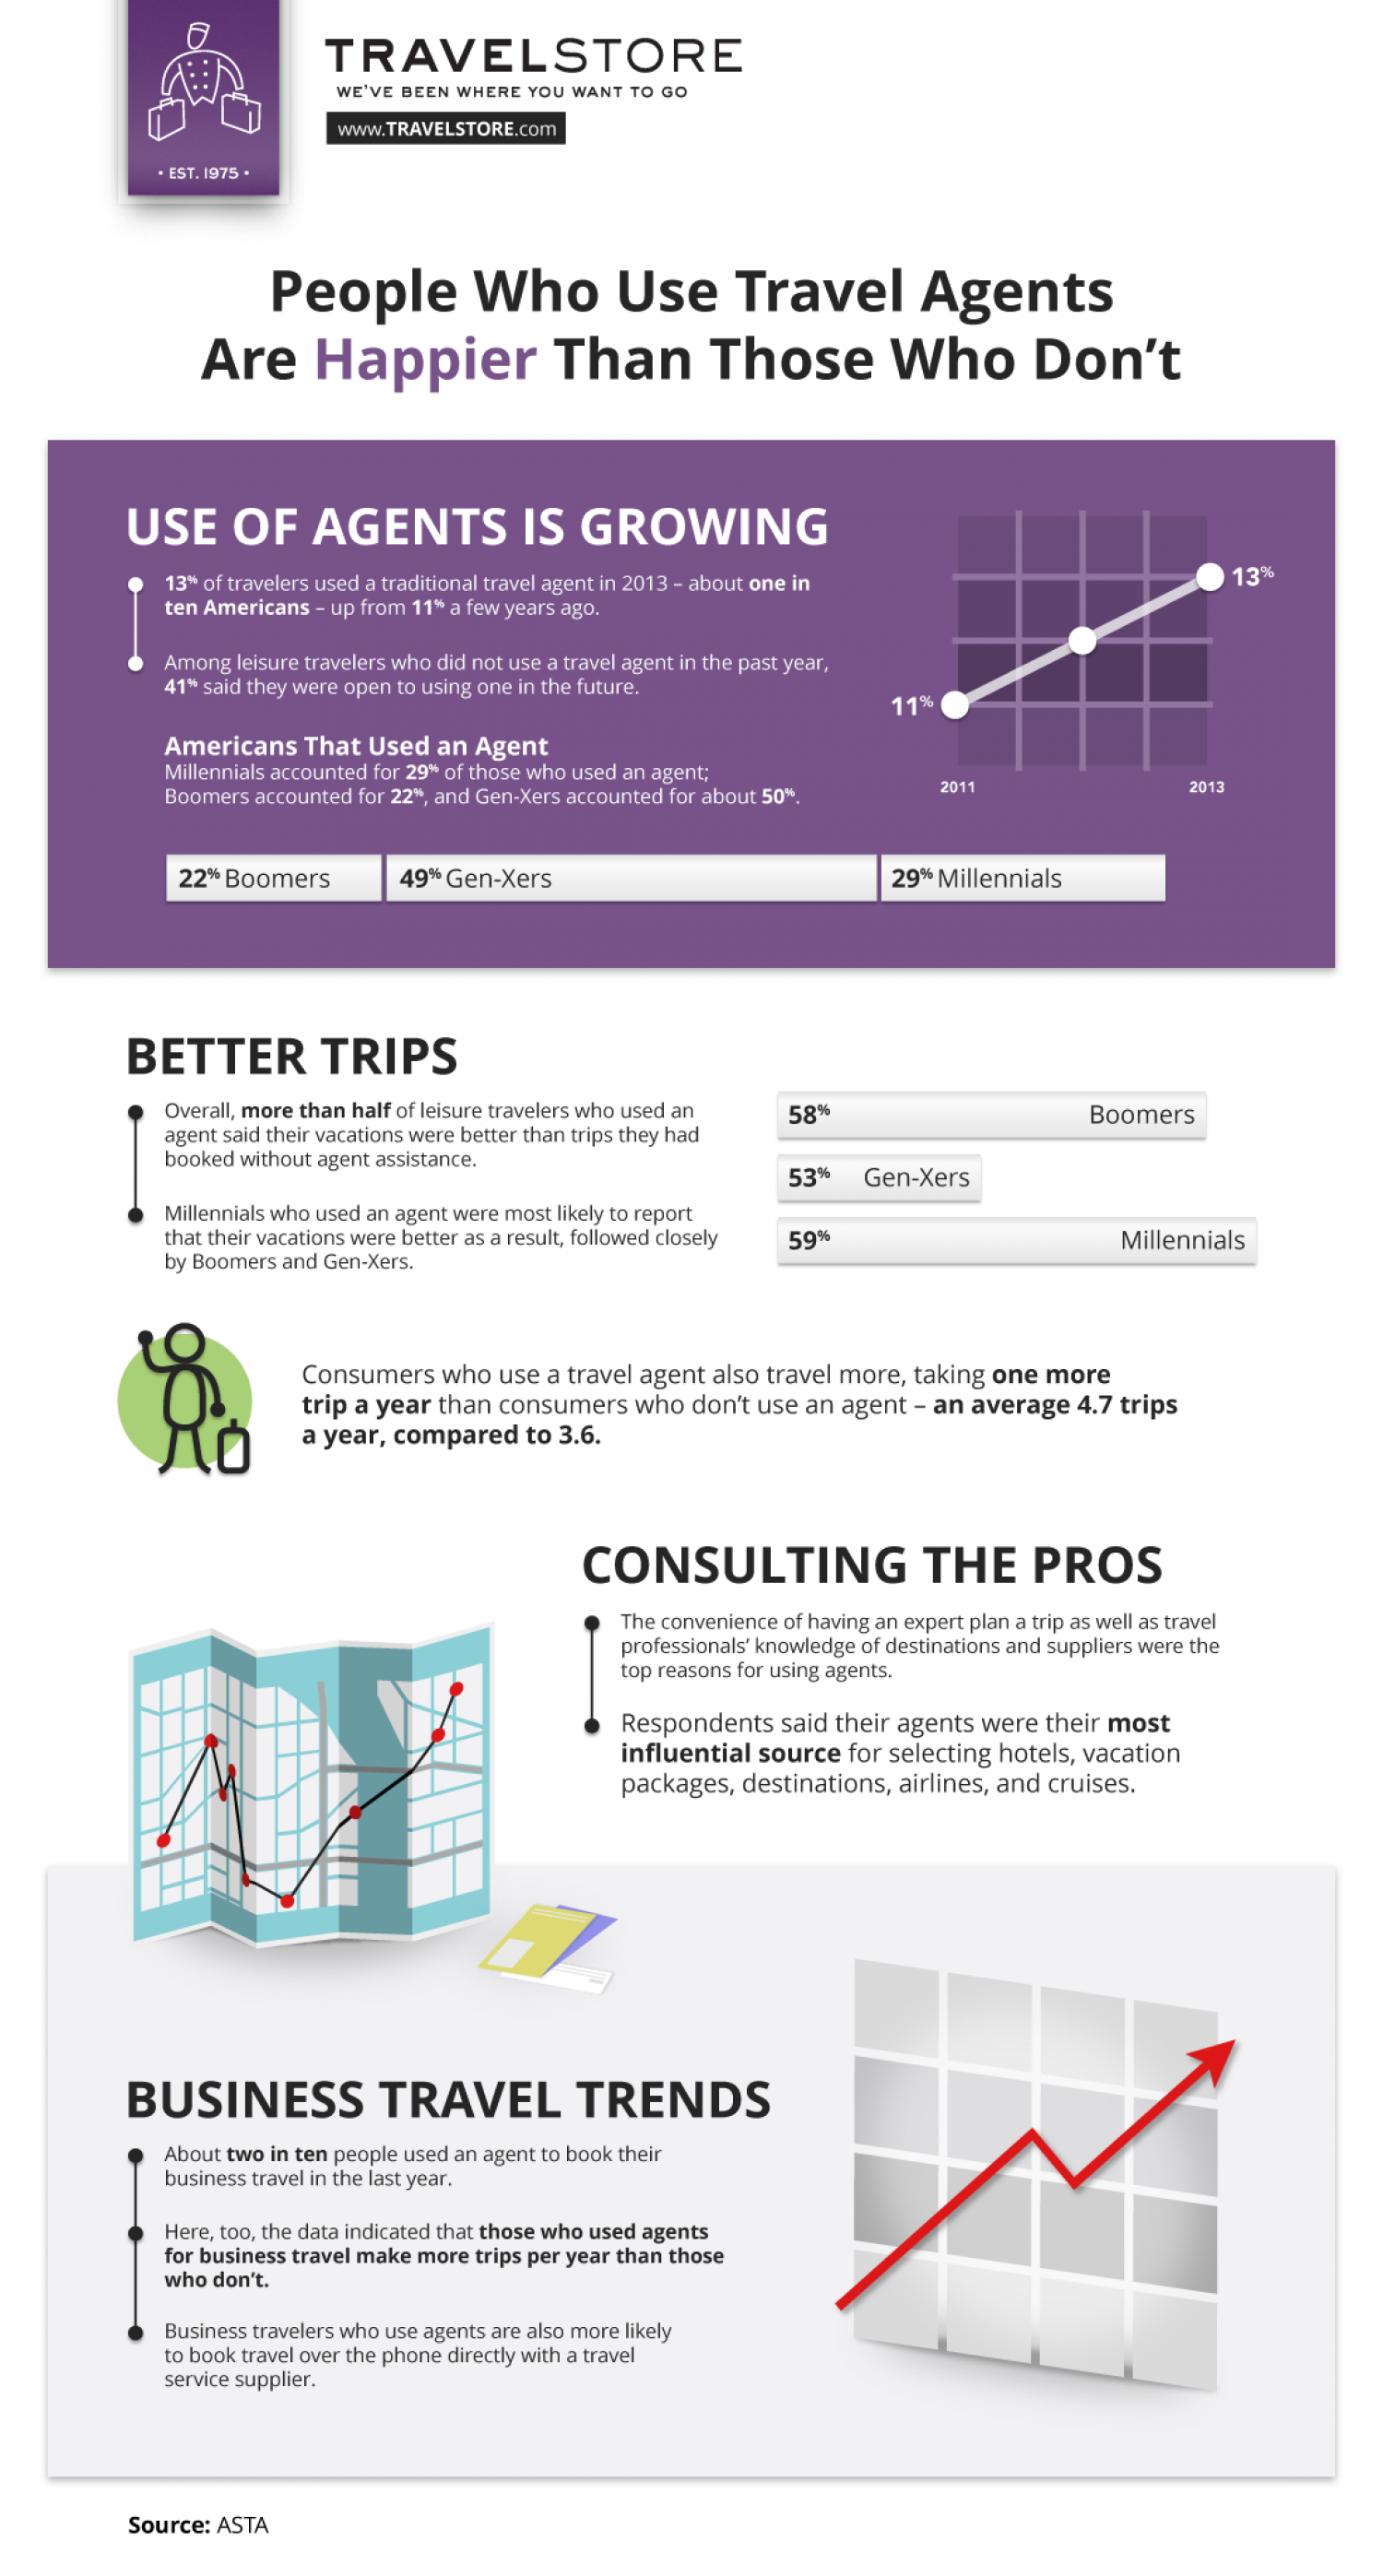 People Who Use Travel Agents Are Happier Than Those Who Don't Infographic